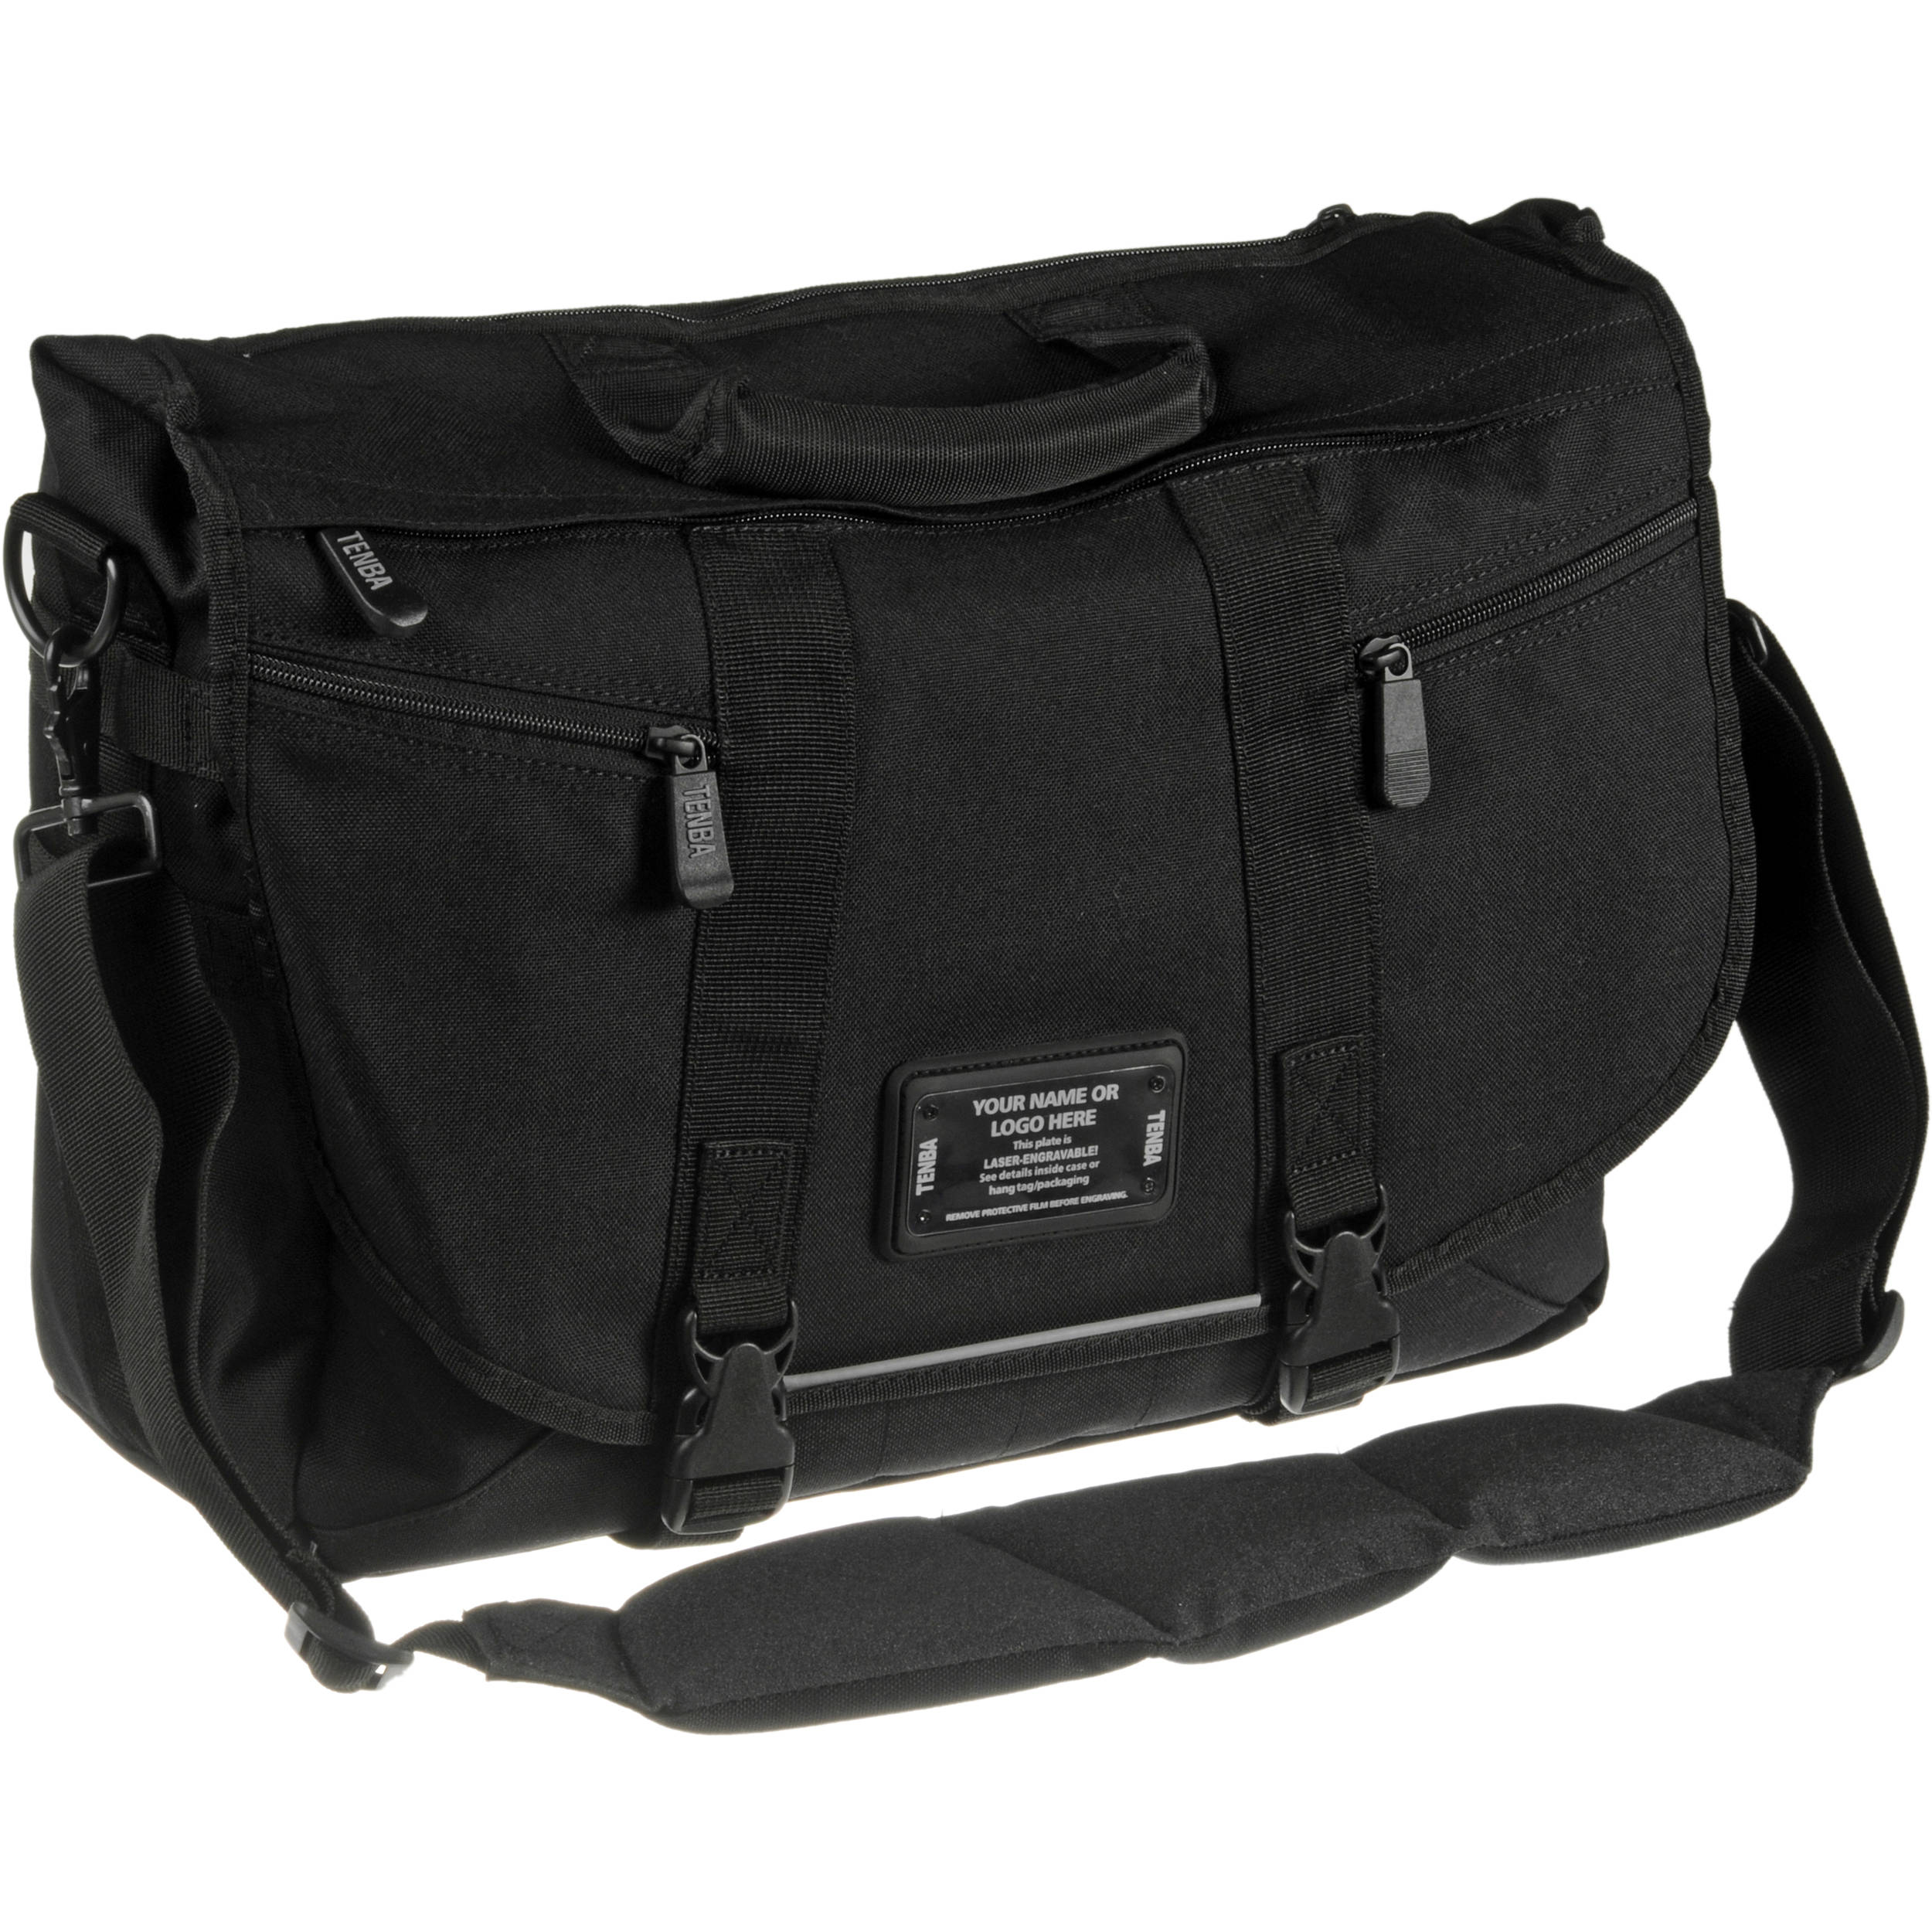 Tenba Messenger: Large Photo/Laptop Bag 638-235 B&H Photo Video